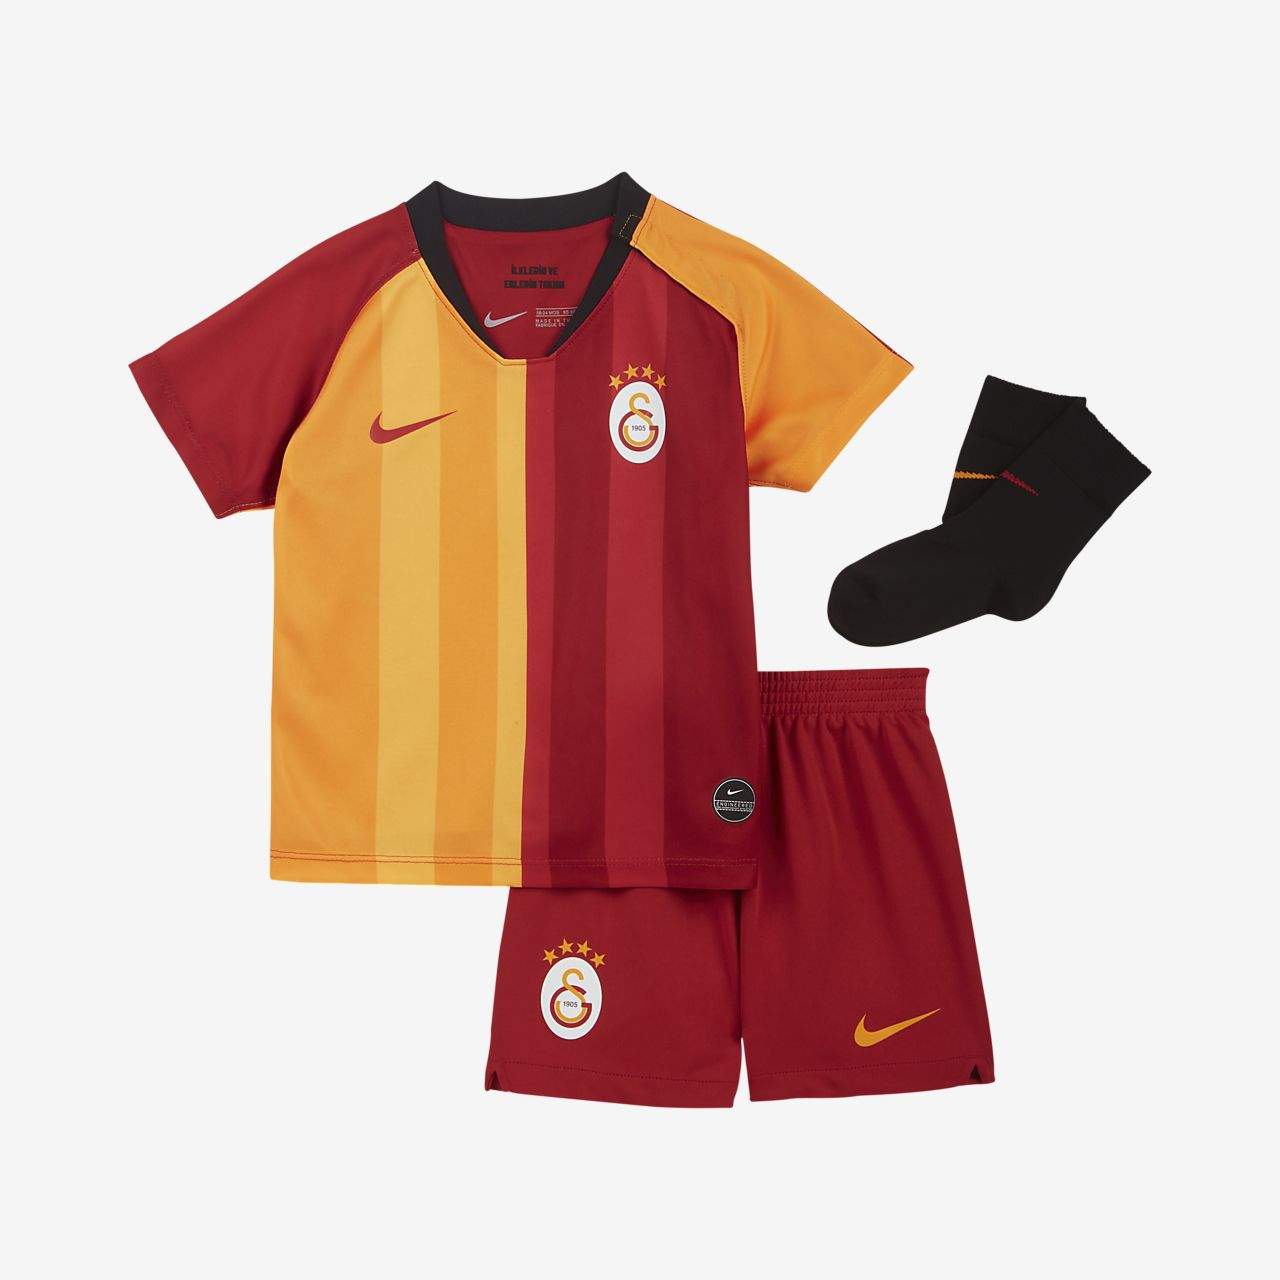 Kit de fútbol de local para bebés e infantil del Galatasaray 2019/20